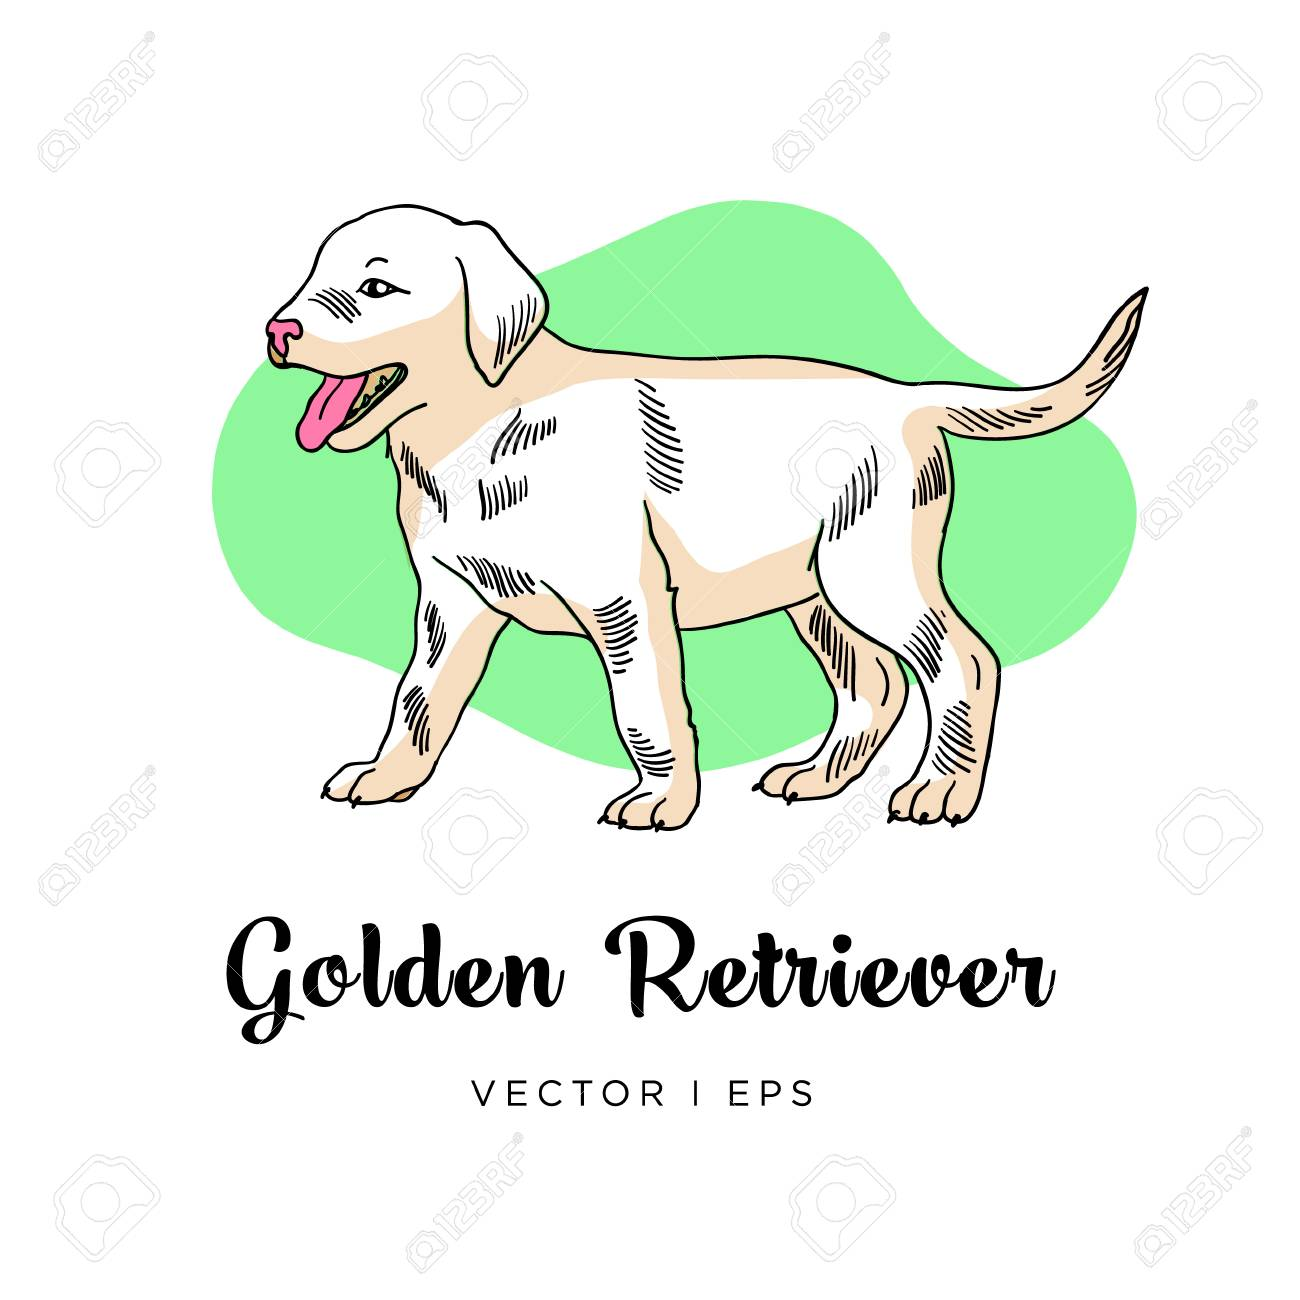 Vector Editable Sketch Of A Golden Retriever Puppy Dog Isolated Royalty Free Cliparts Vectors And Stock Illustration Image 110301938